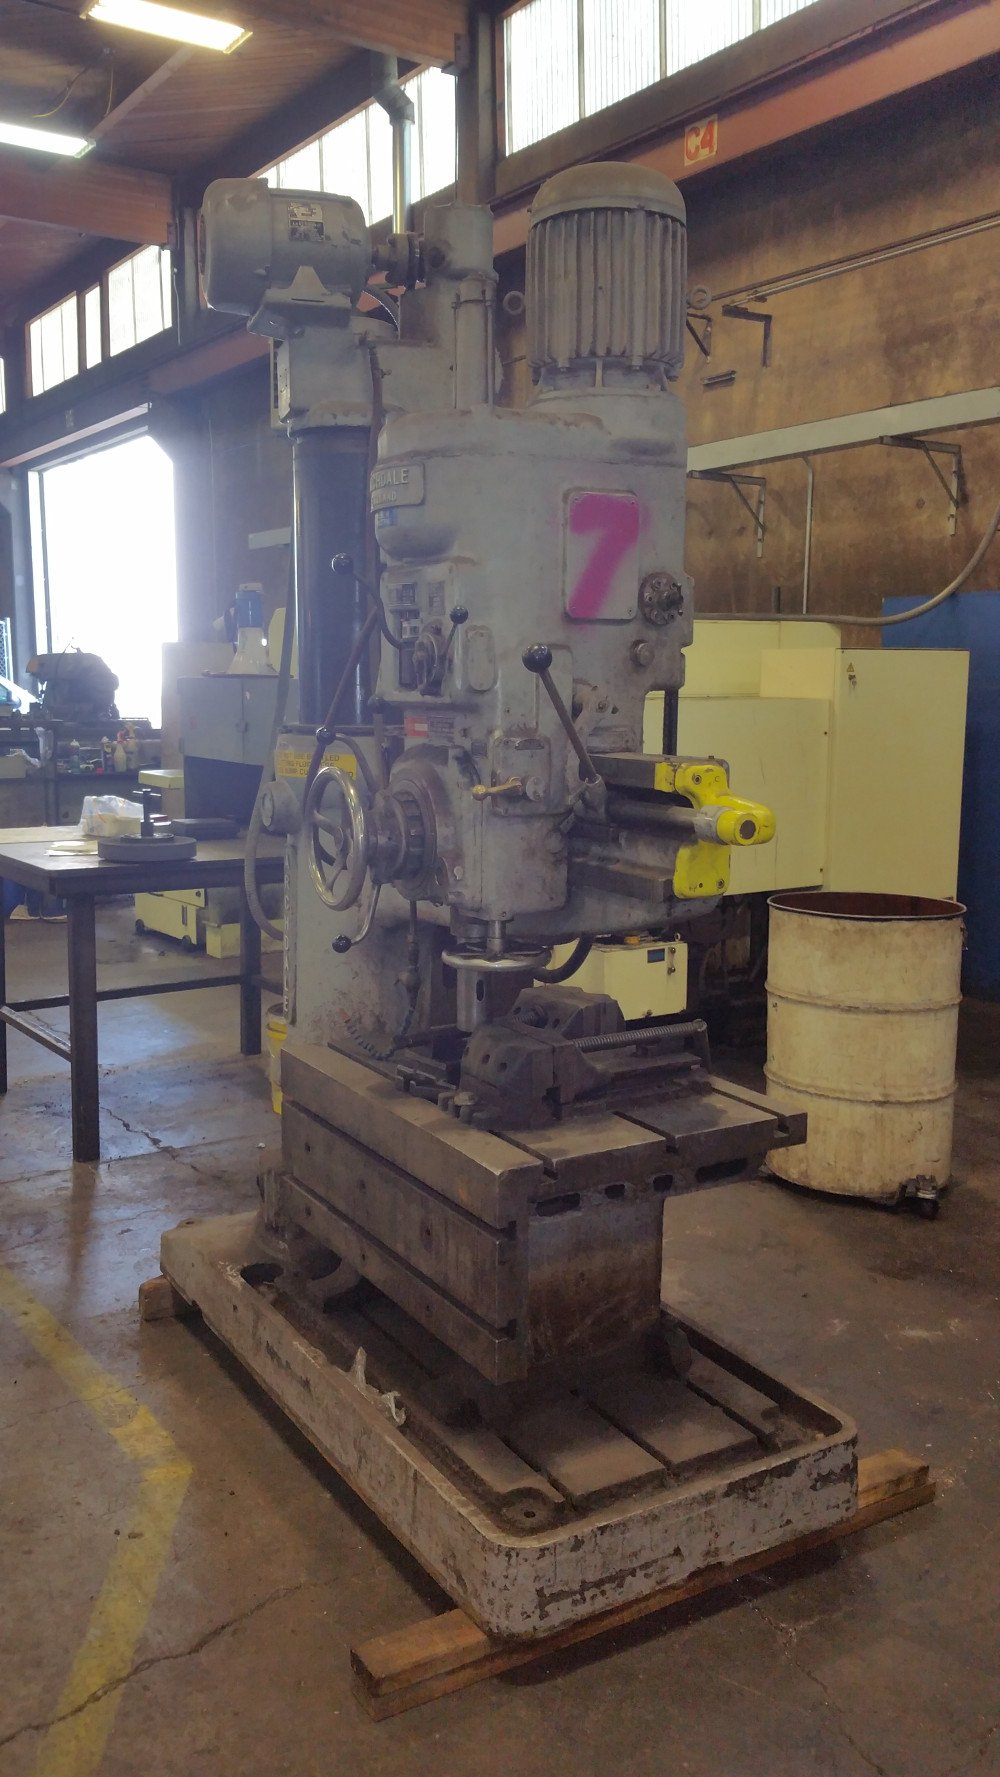 Radial Drill Archdale England 3 X 9 2 X 3 Table